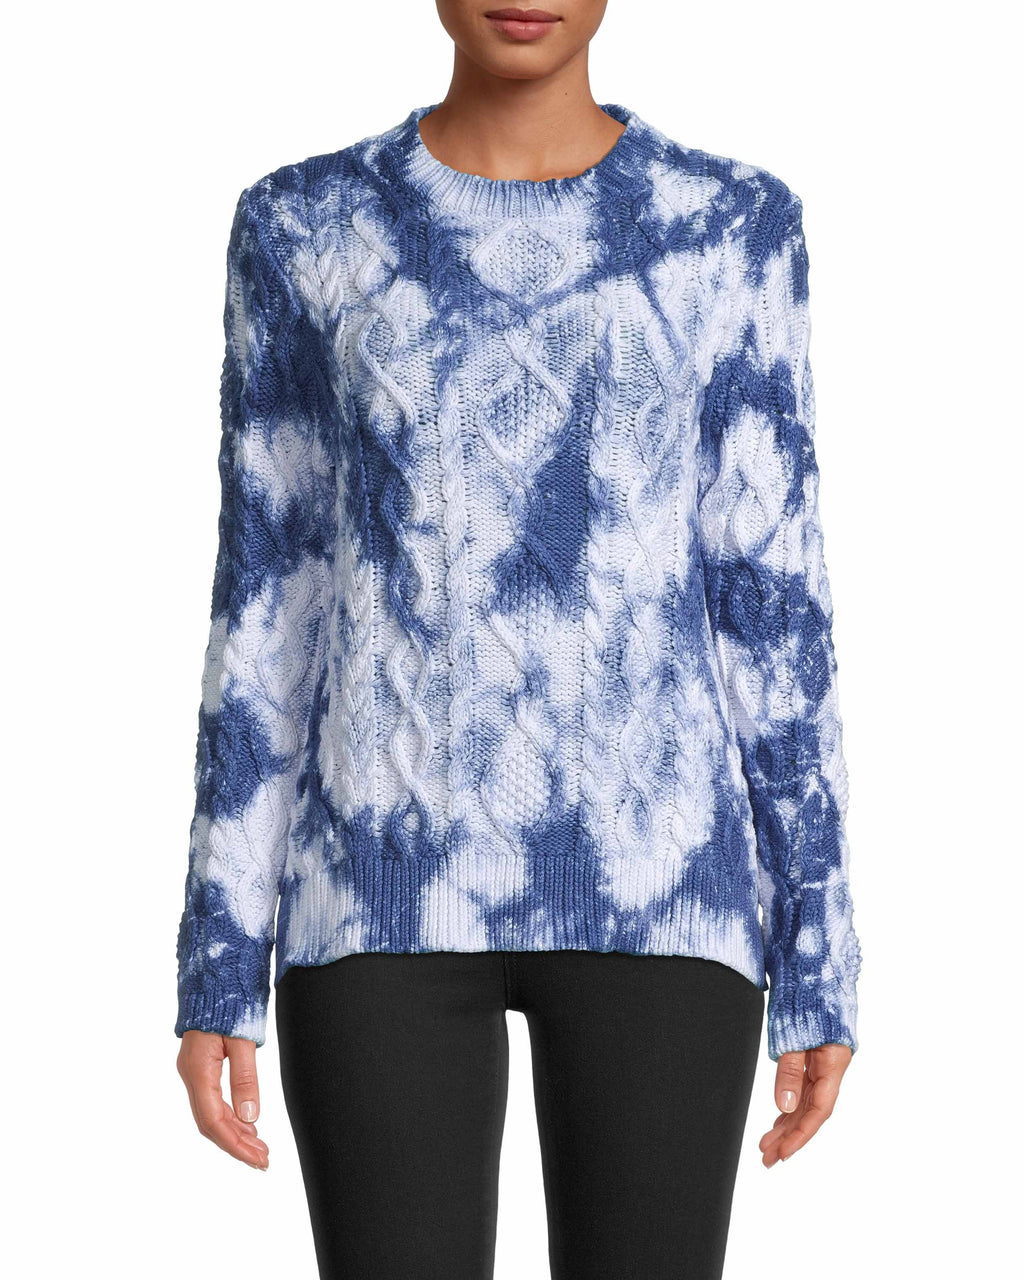 CT18537 - TIE DYE CABLE KNIT SWEATER - tops - knitwear - Chunky cable knit is a winter necessity, and this year - so is tie dye. Designed in a classic crew neck silhouette with a slightly flared sleeve. Add 1 line break Stylist Tip: Style with our Evening Garden Ruffle Mini Skirt.